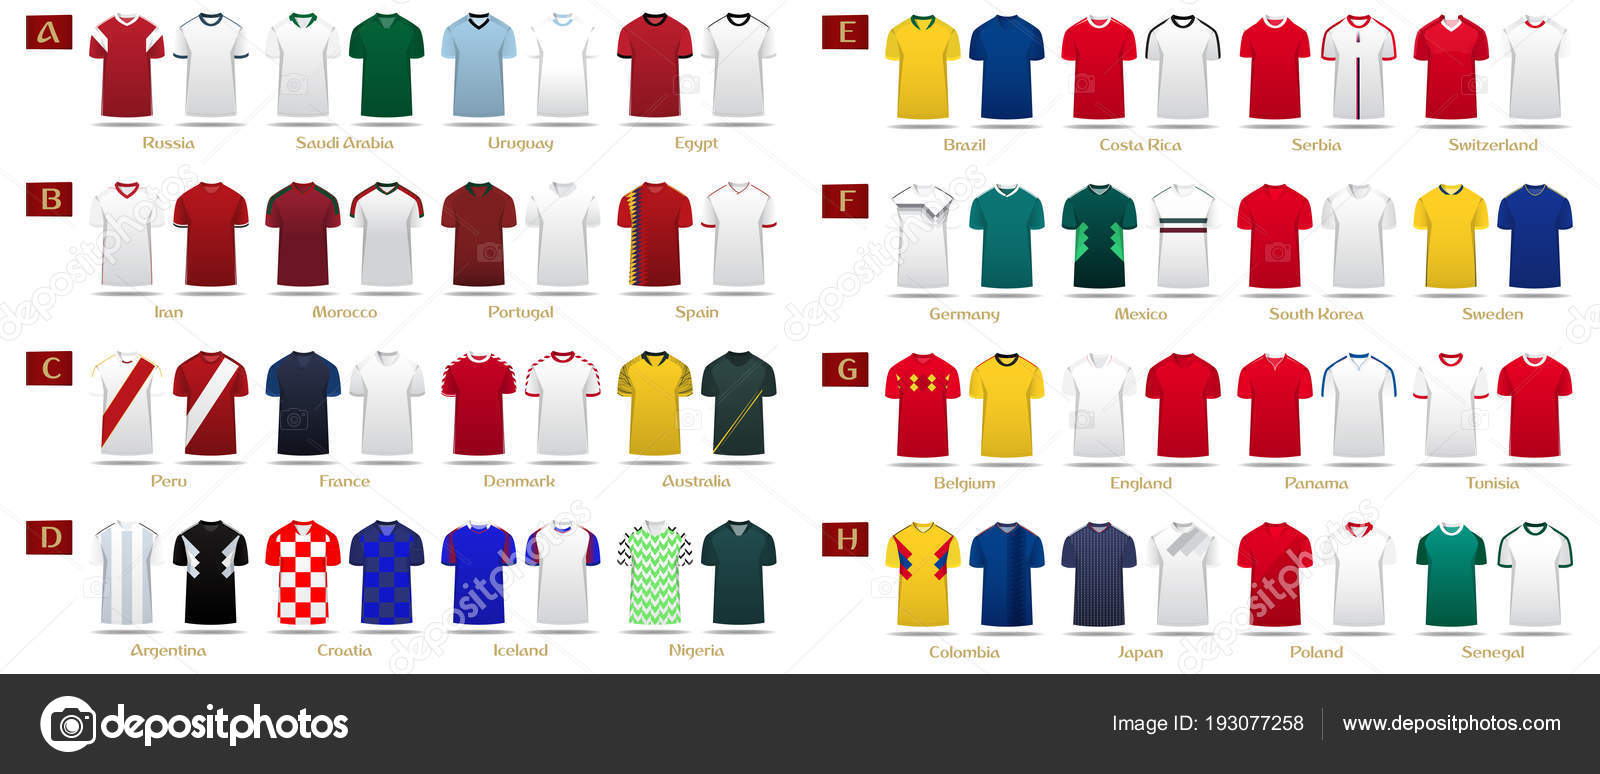 1f50e7b5bef Soccer kit or football jersey template design for national football team.  Home and Away soccer uniform in front view mock up. Football t-shirt for  world ...